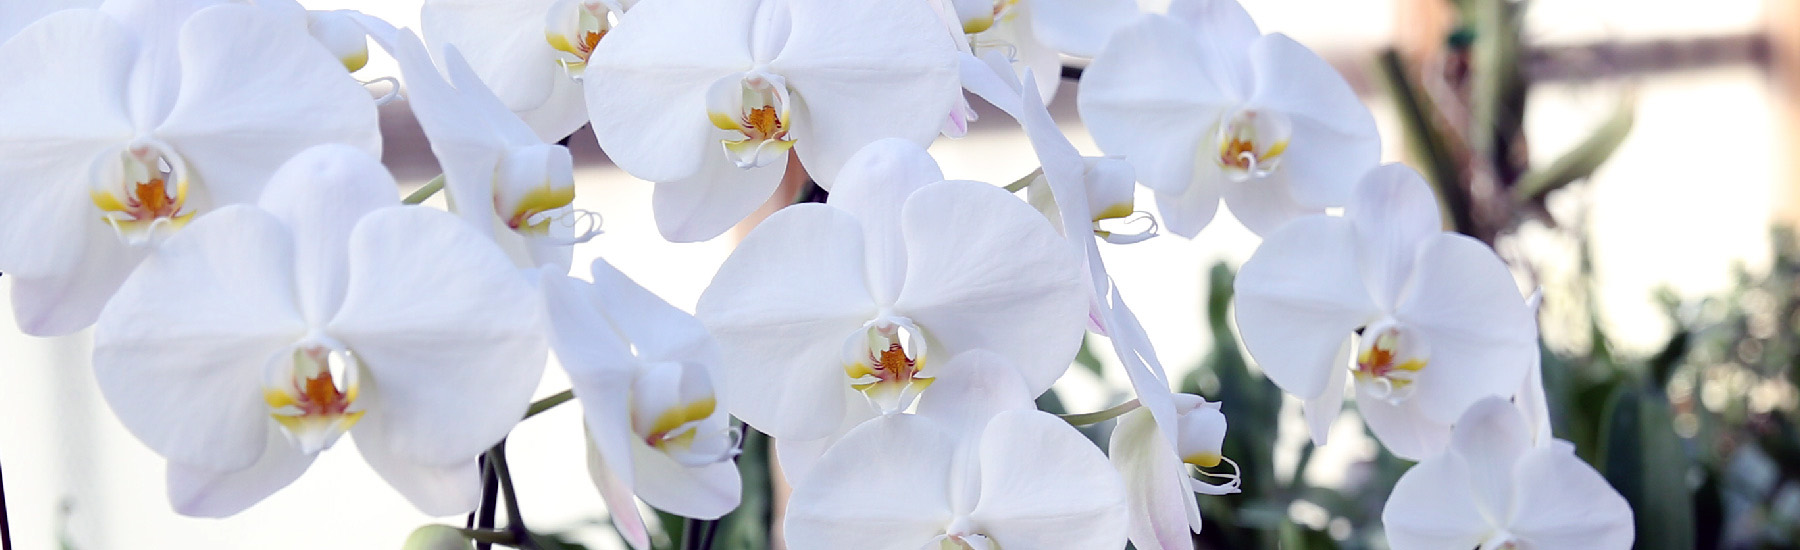 Phalaenopsis Care Tips